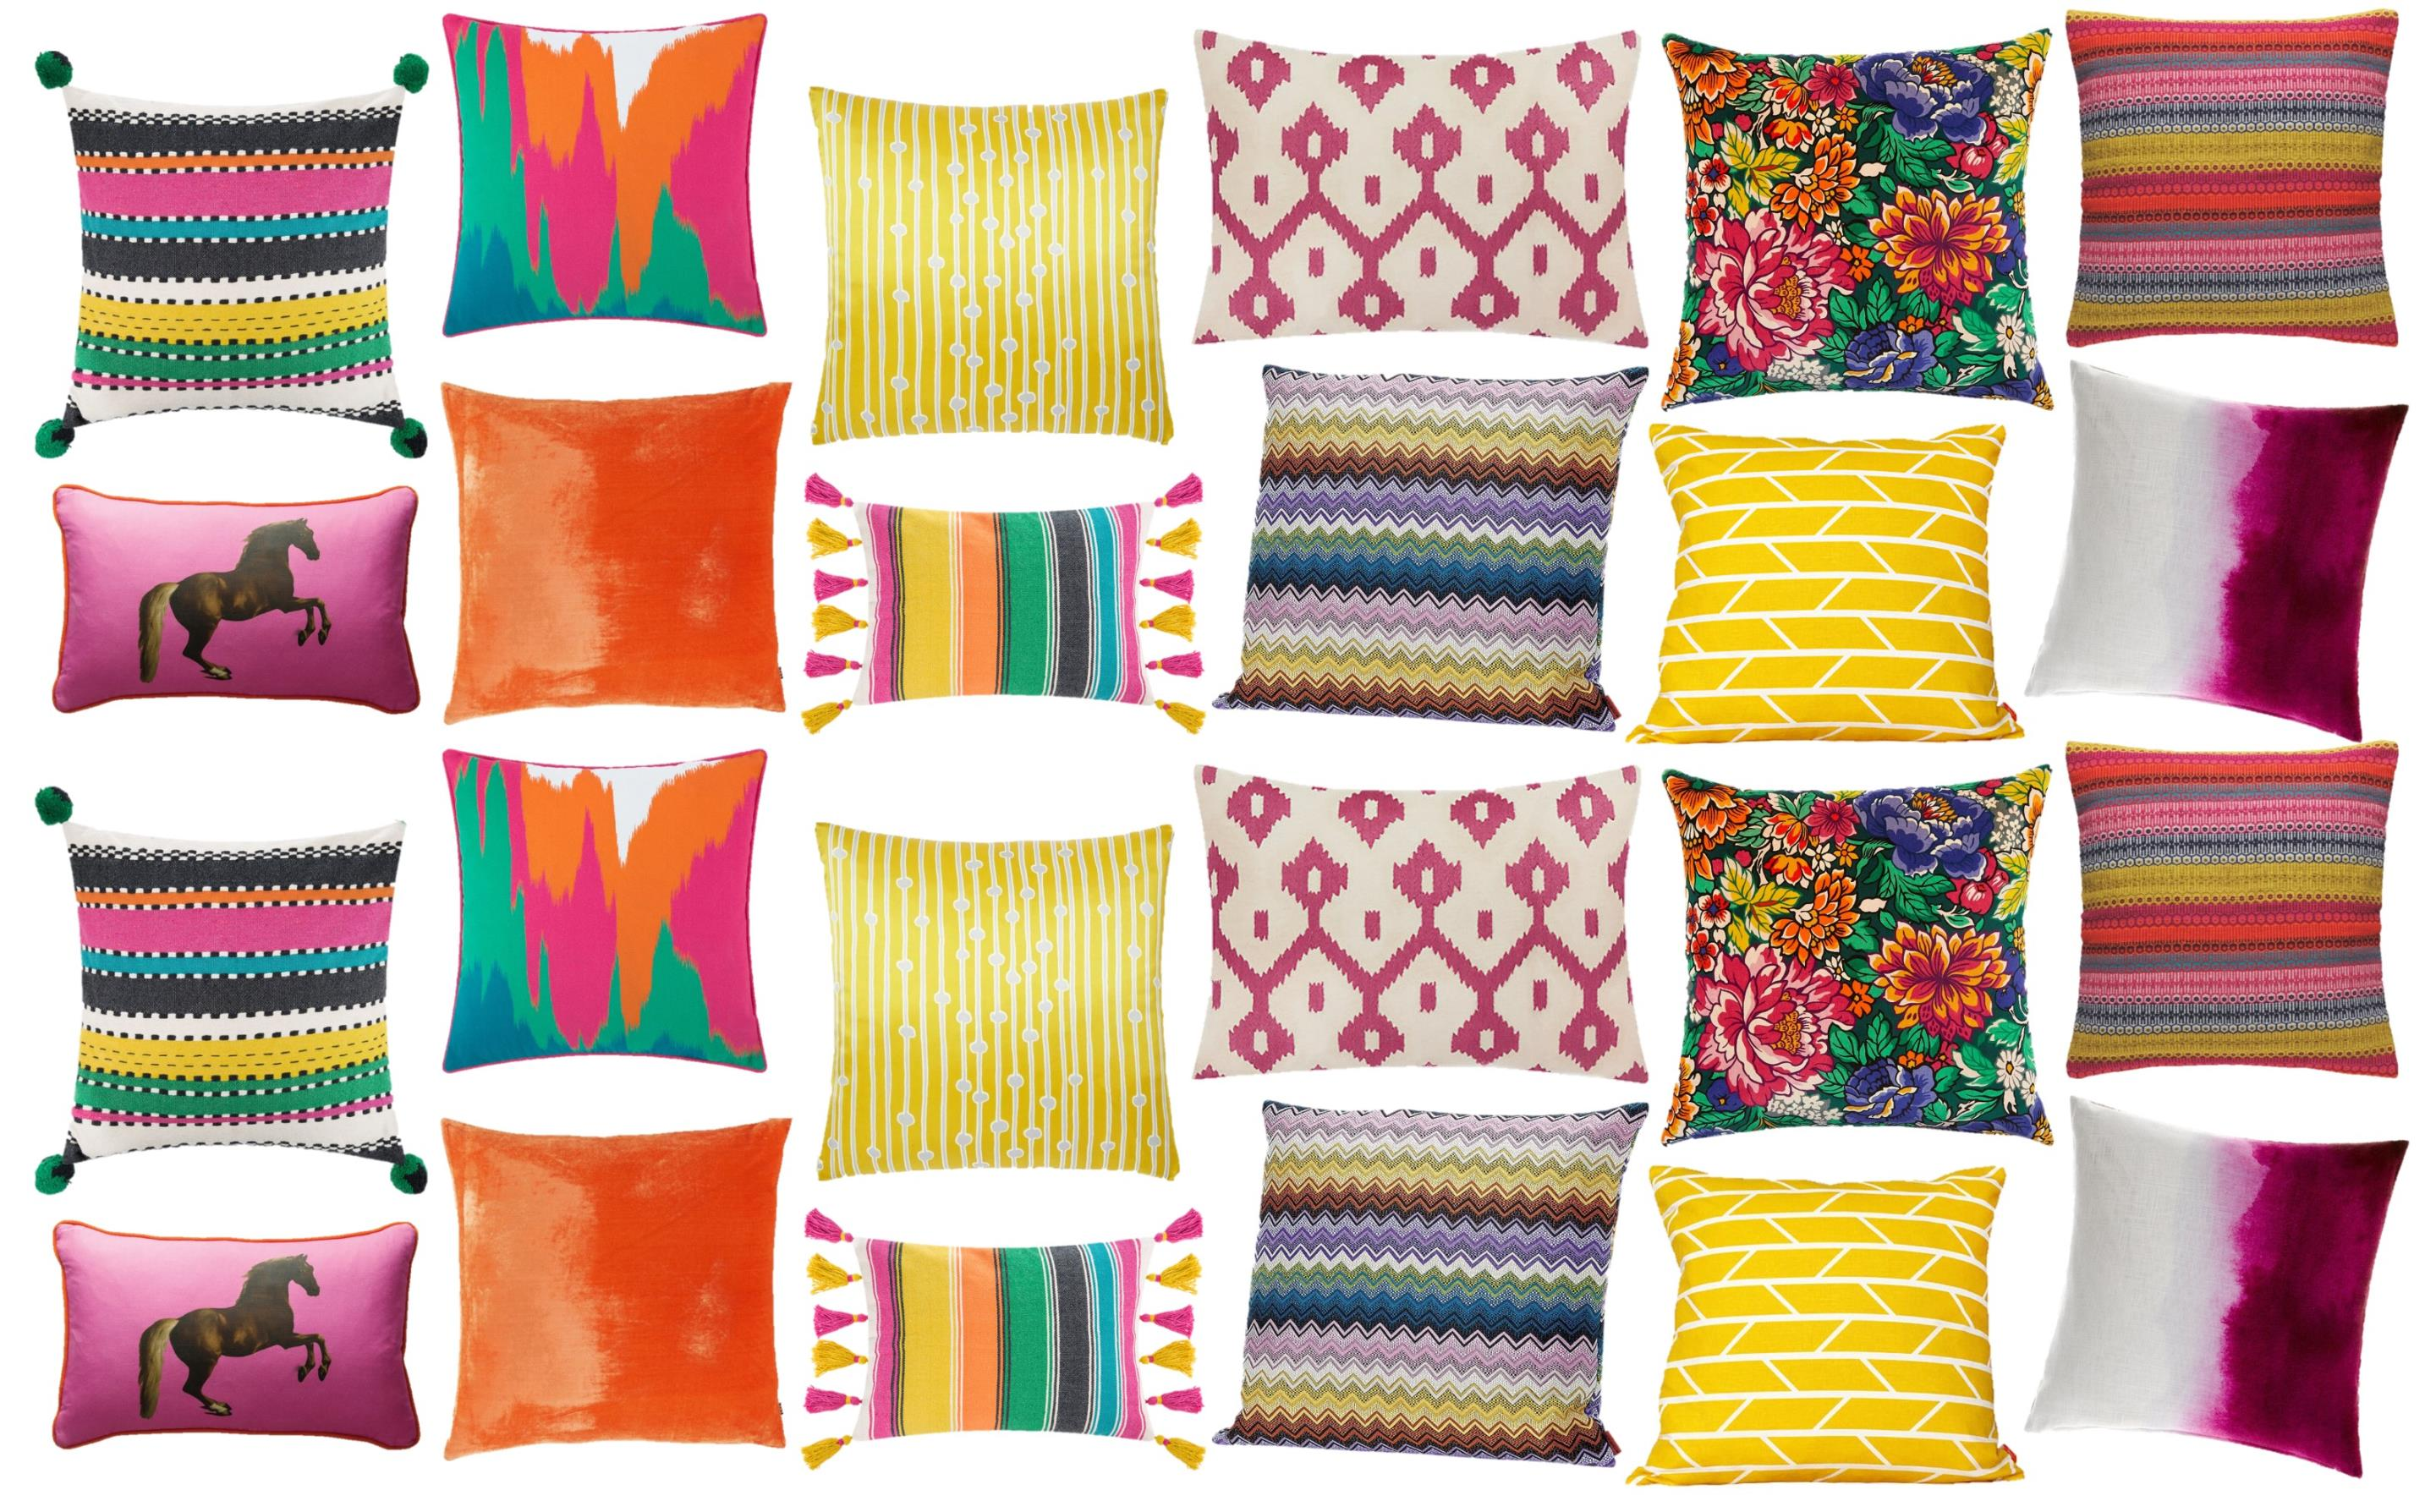 dream pillows pillow in cherie sofa missoni bomb couch bohemian the